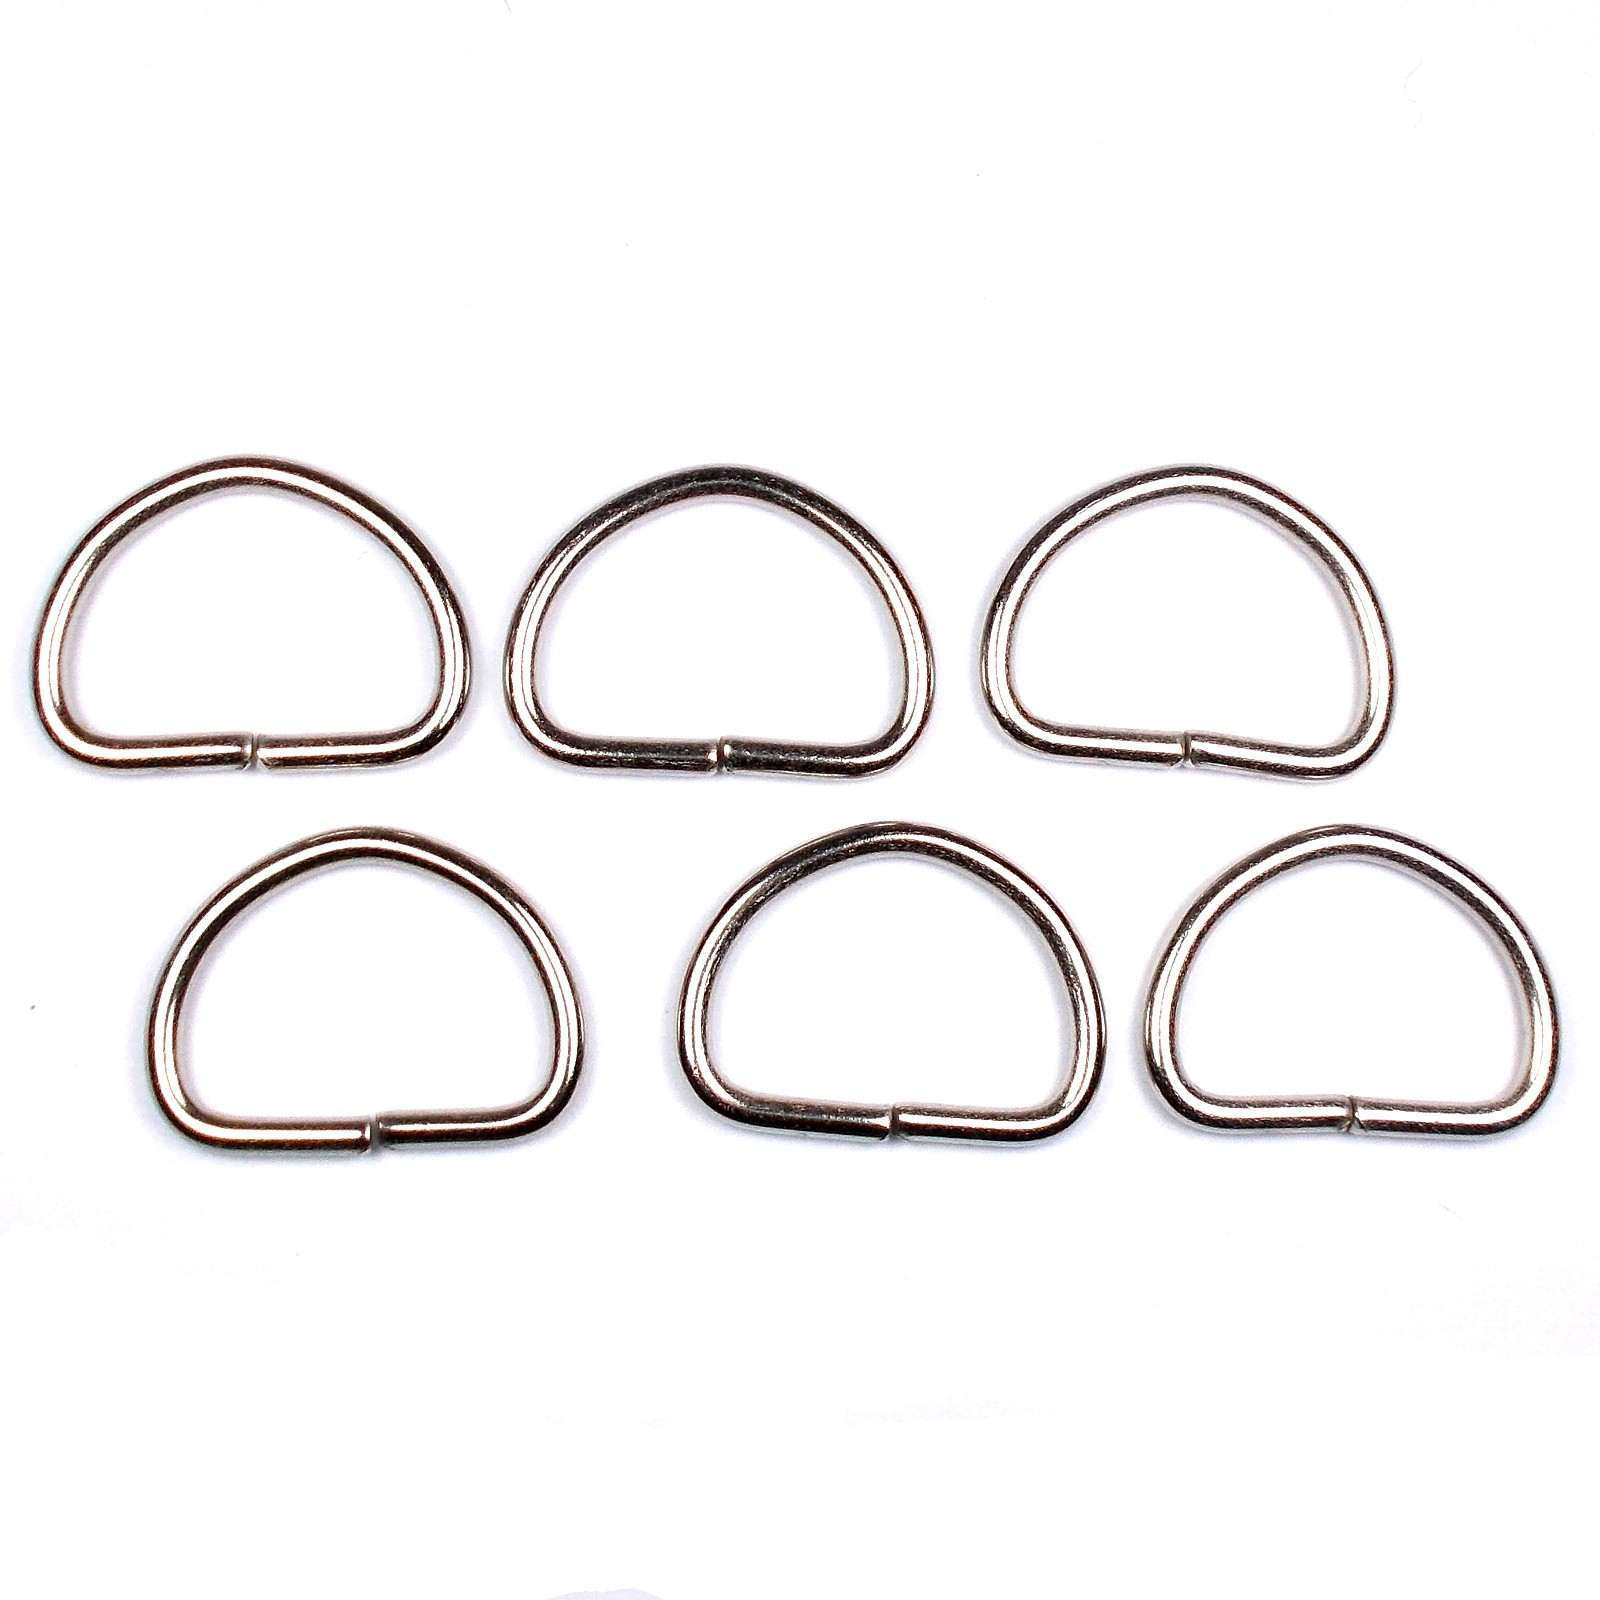 Silver Metal D Rings 33mm Pack of 6